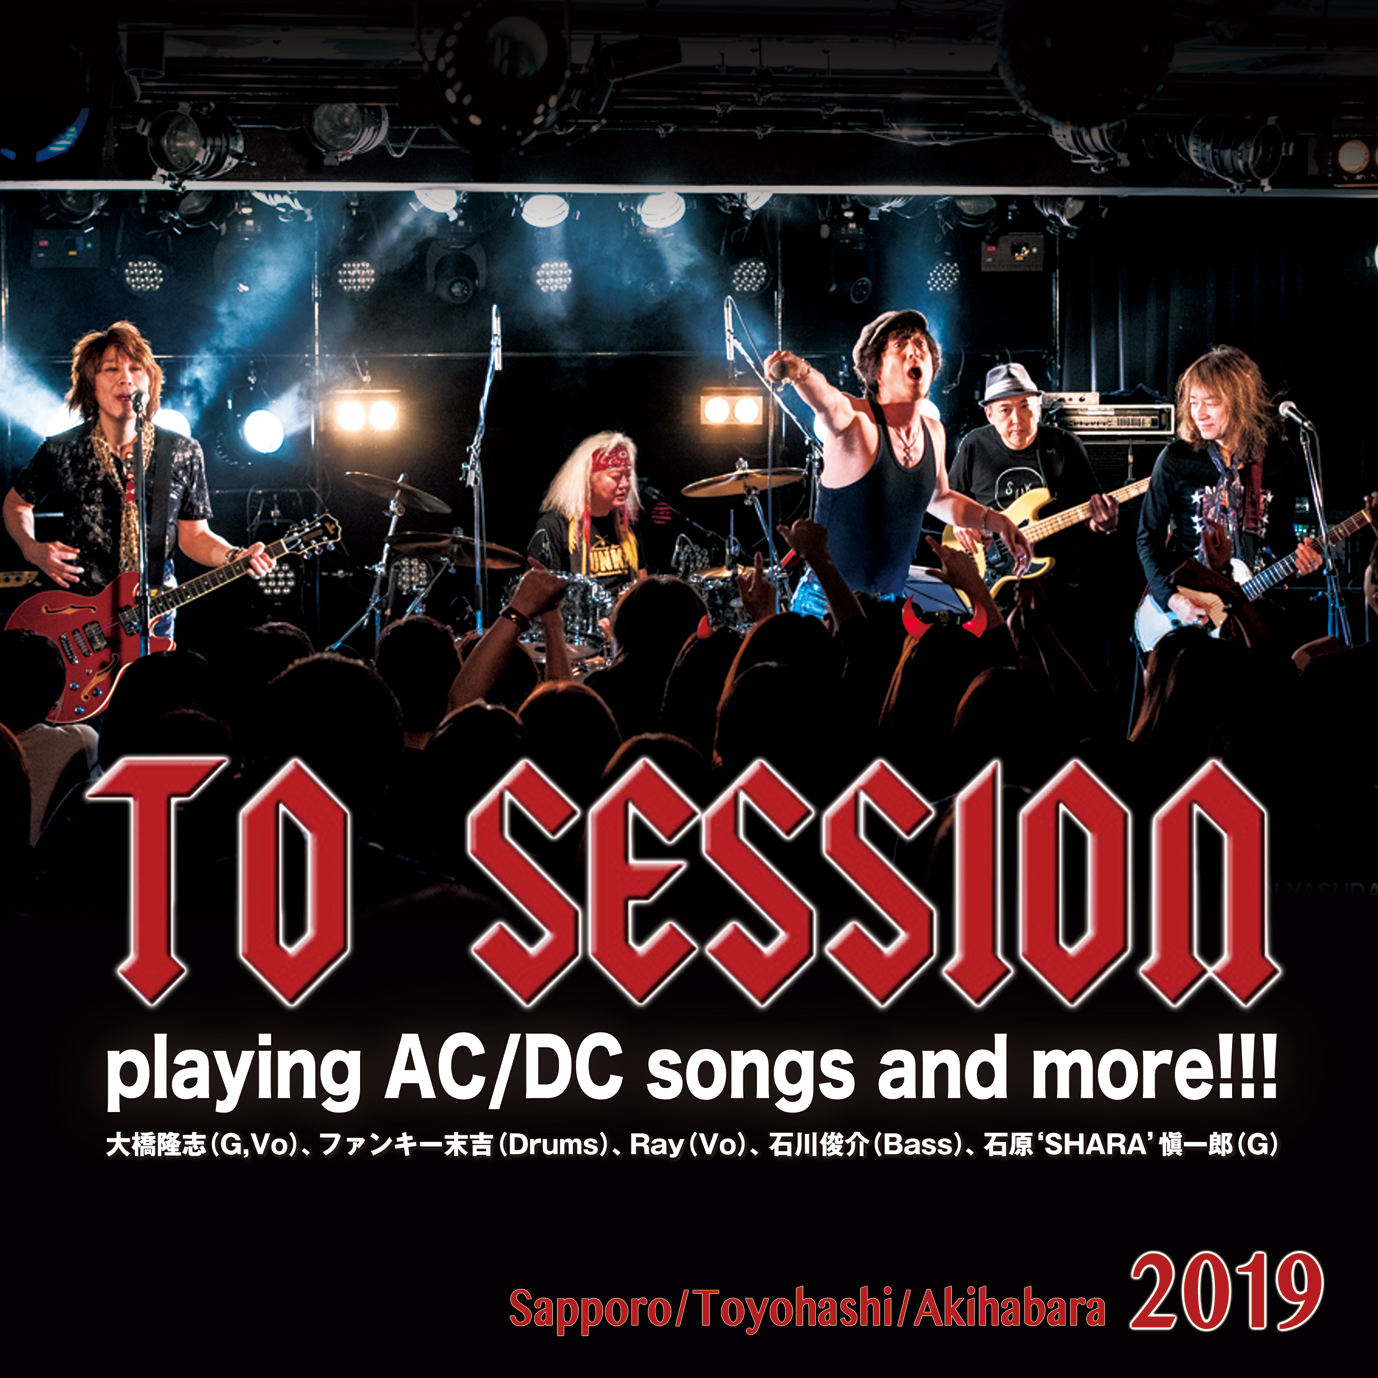 TO SESSION – playing AC/DC songs and more!!! – 秋葉原DAY2